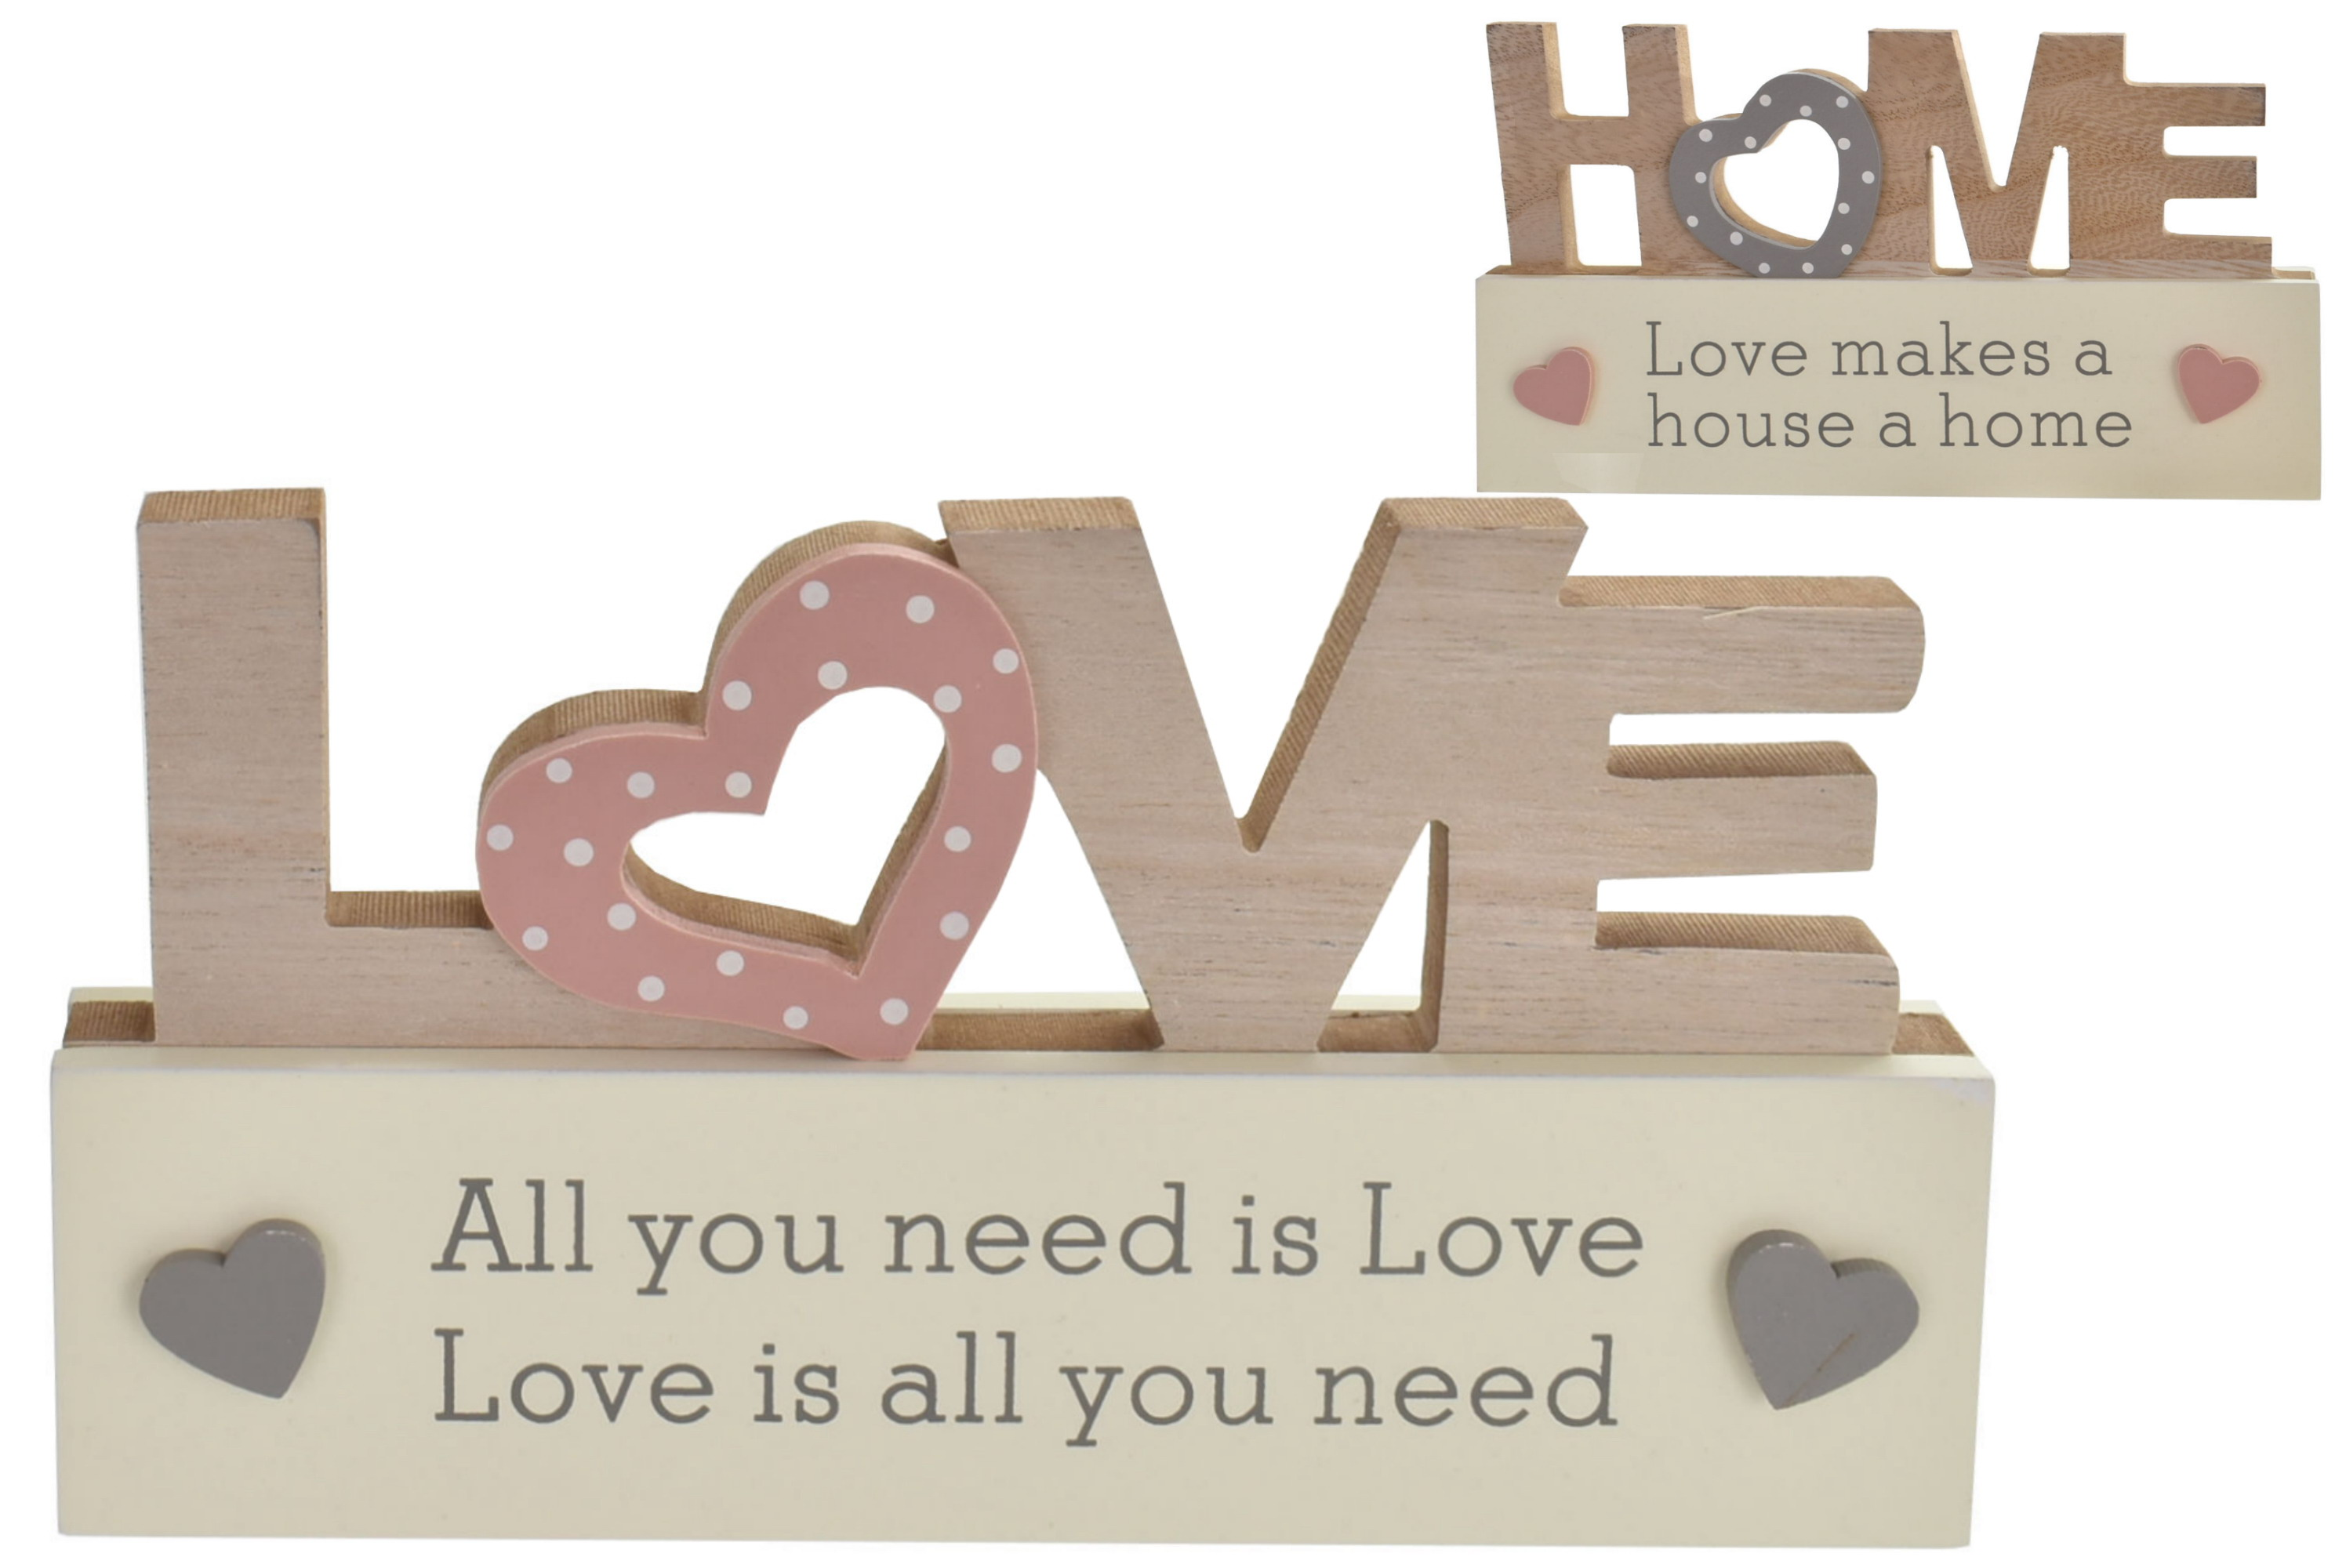 19.5x10cm Wooden Love/Home Letters 2 Assorted Designs